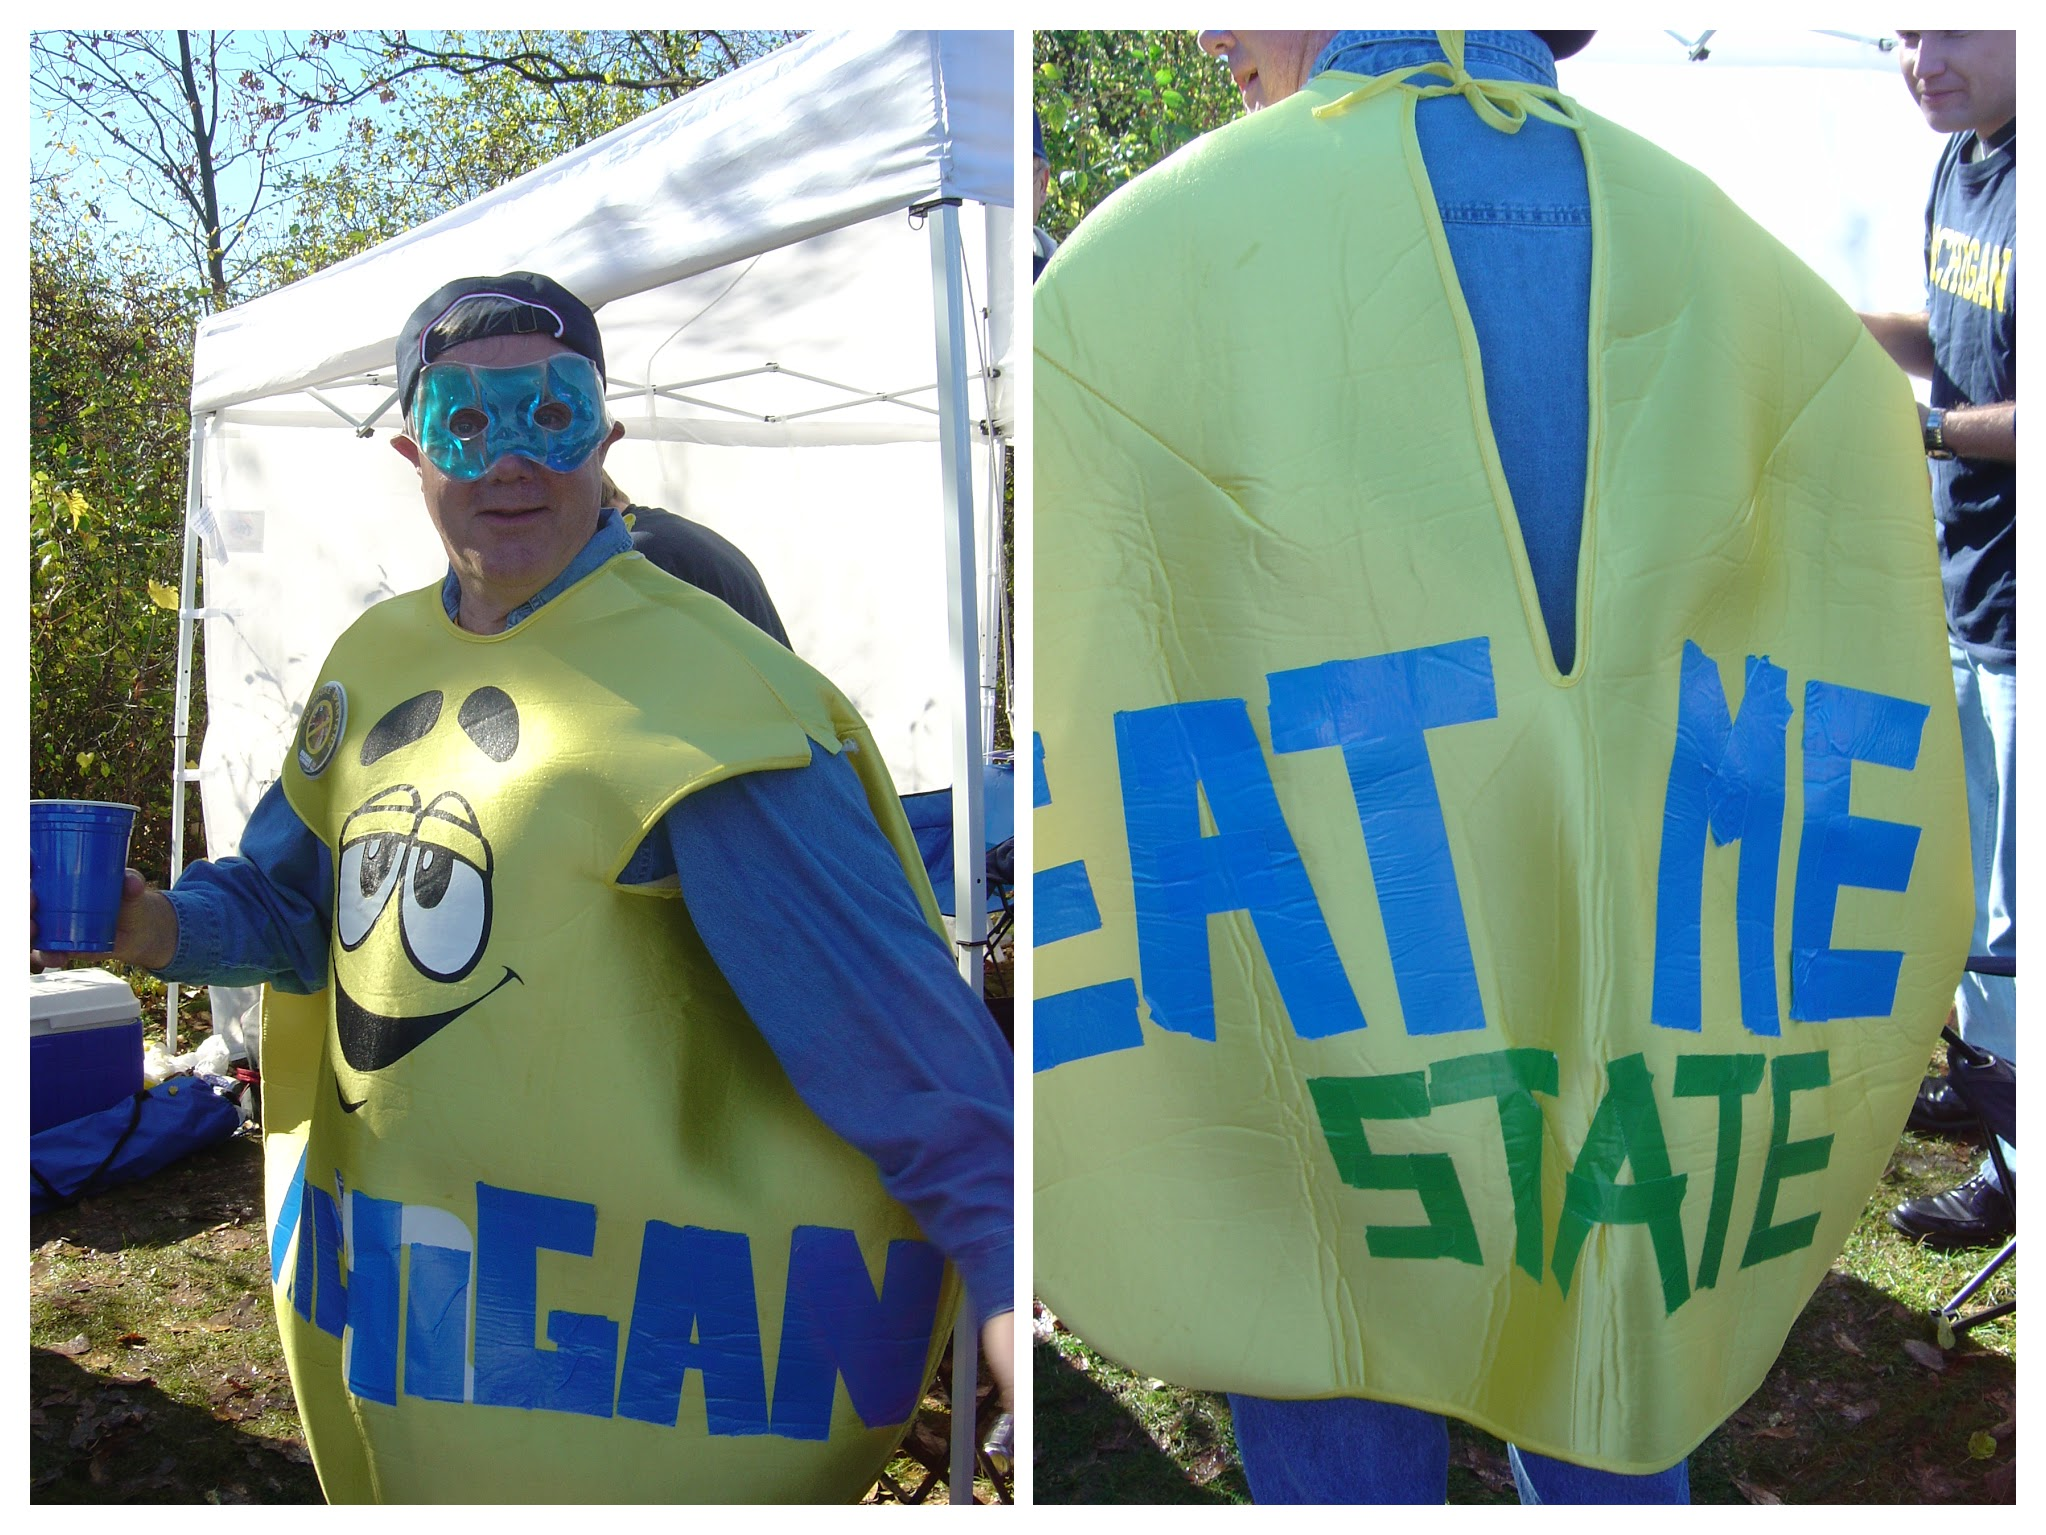 October 30, 2004 - Captain Michigan wears an M&M suit before Michigan's 17-point 4th quarter comeback led to victory in 3OTs 45-37.   Gamepage is here .